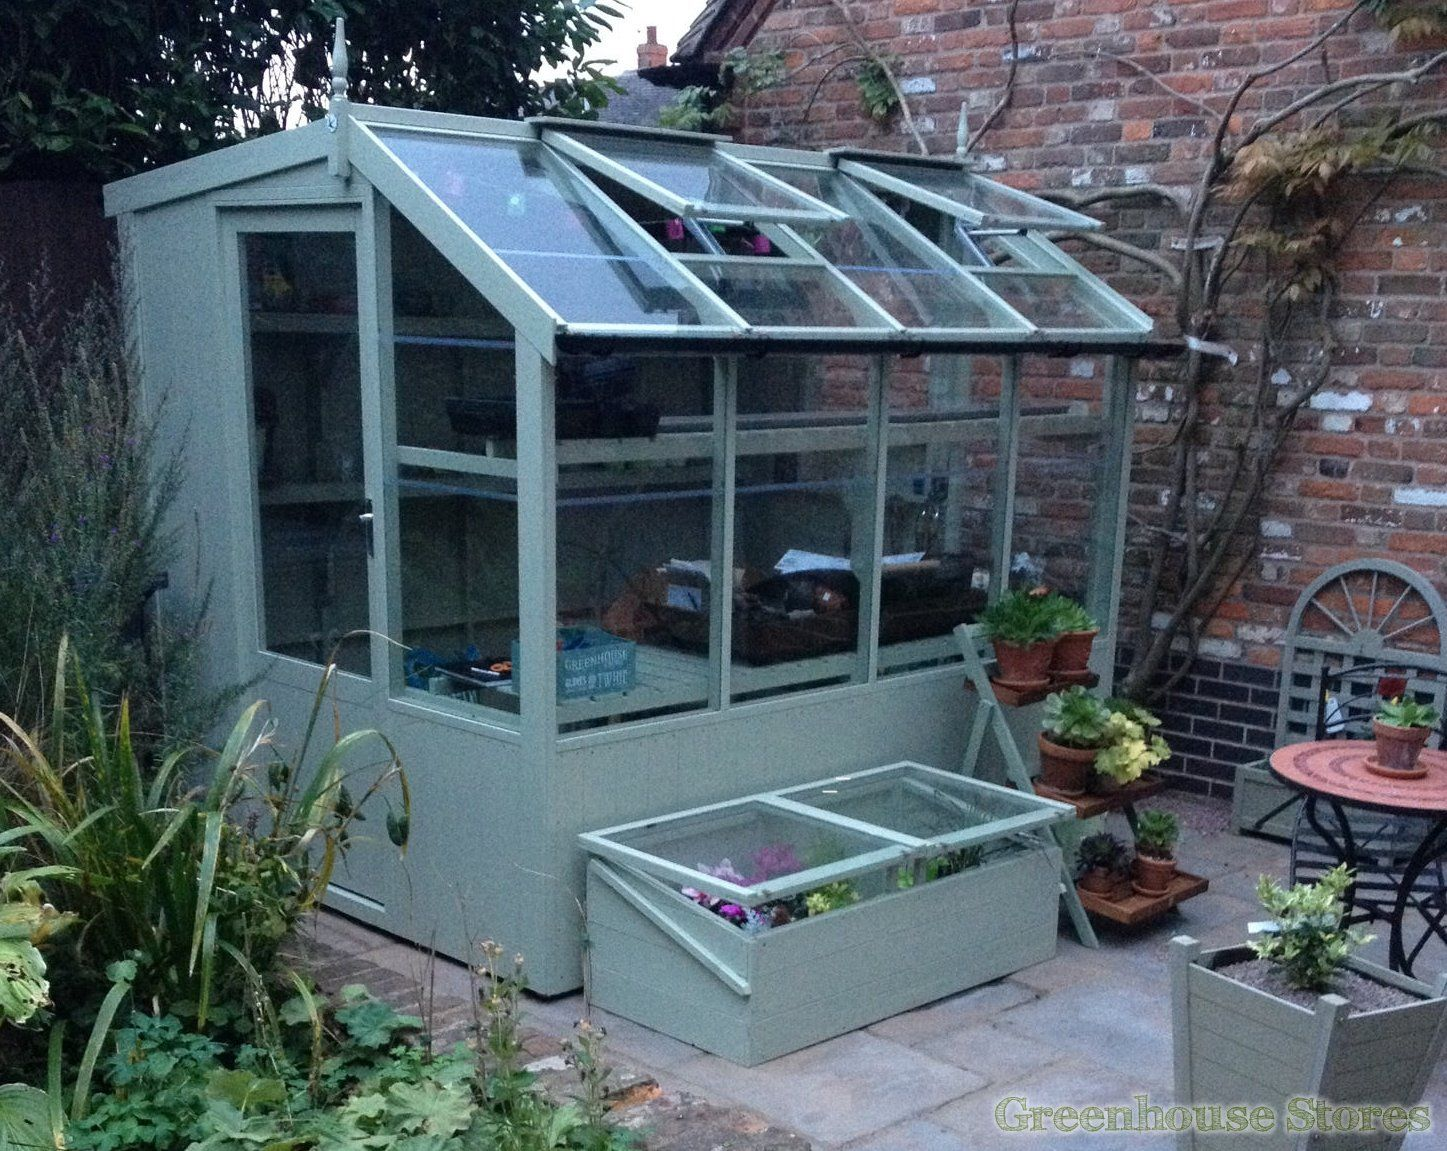 Swallow Jay 6x8 Wooden Potting Shed   Greenhouse Stores